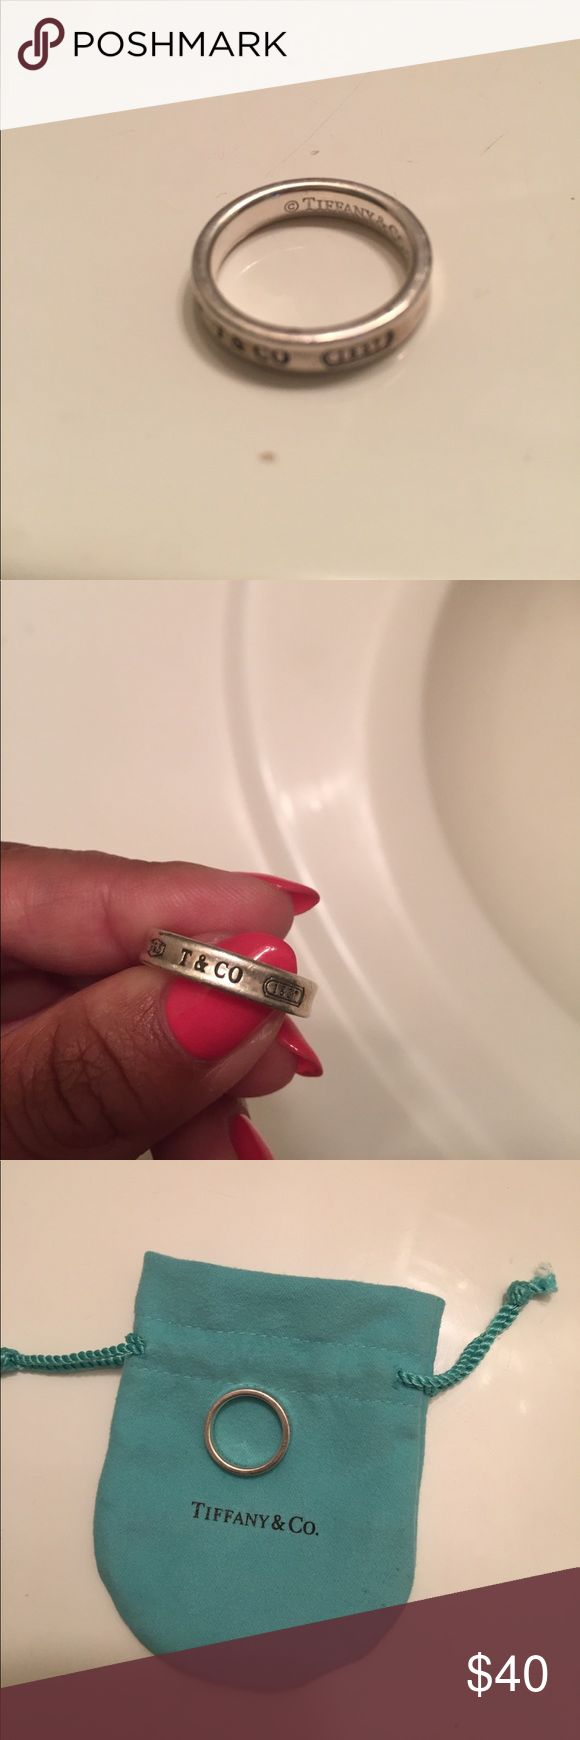 Tiffany and Company Authentic Ring, size 6 Comes with authentic Tiffany and Company Pouch. Tiffany & Co. Jewelry Rings